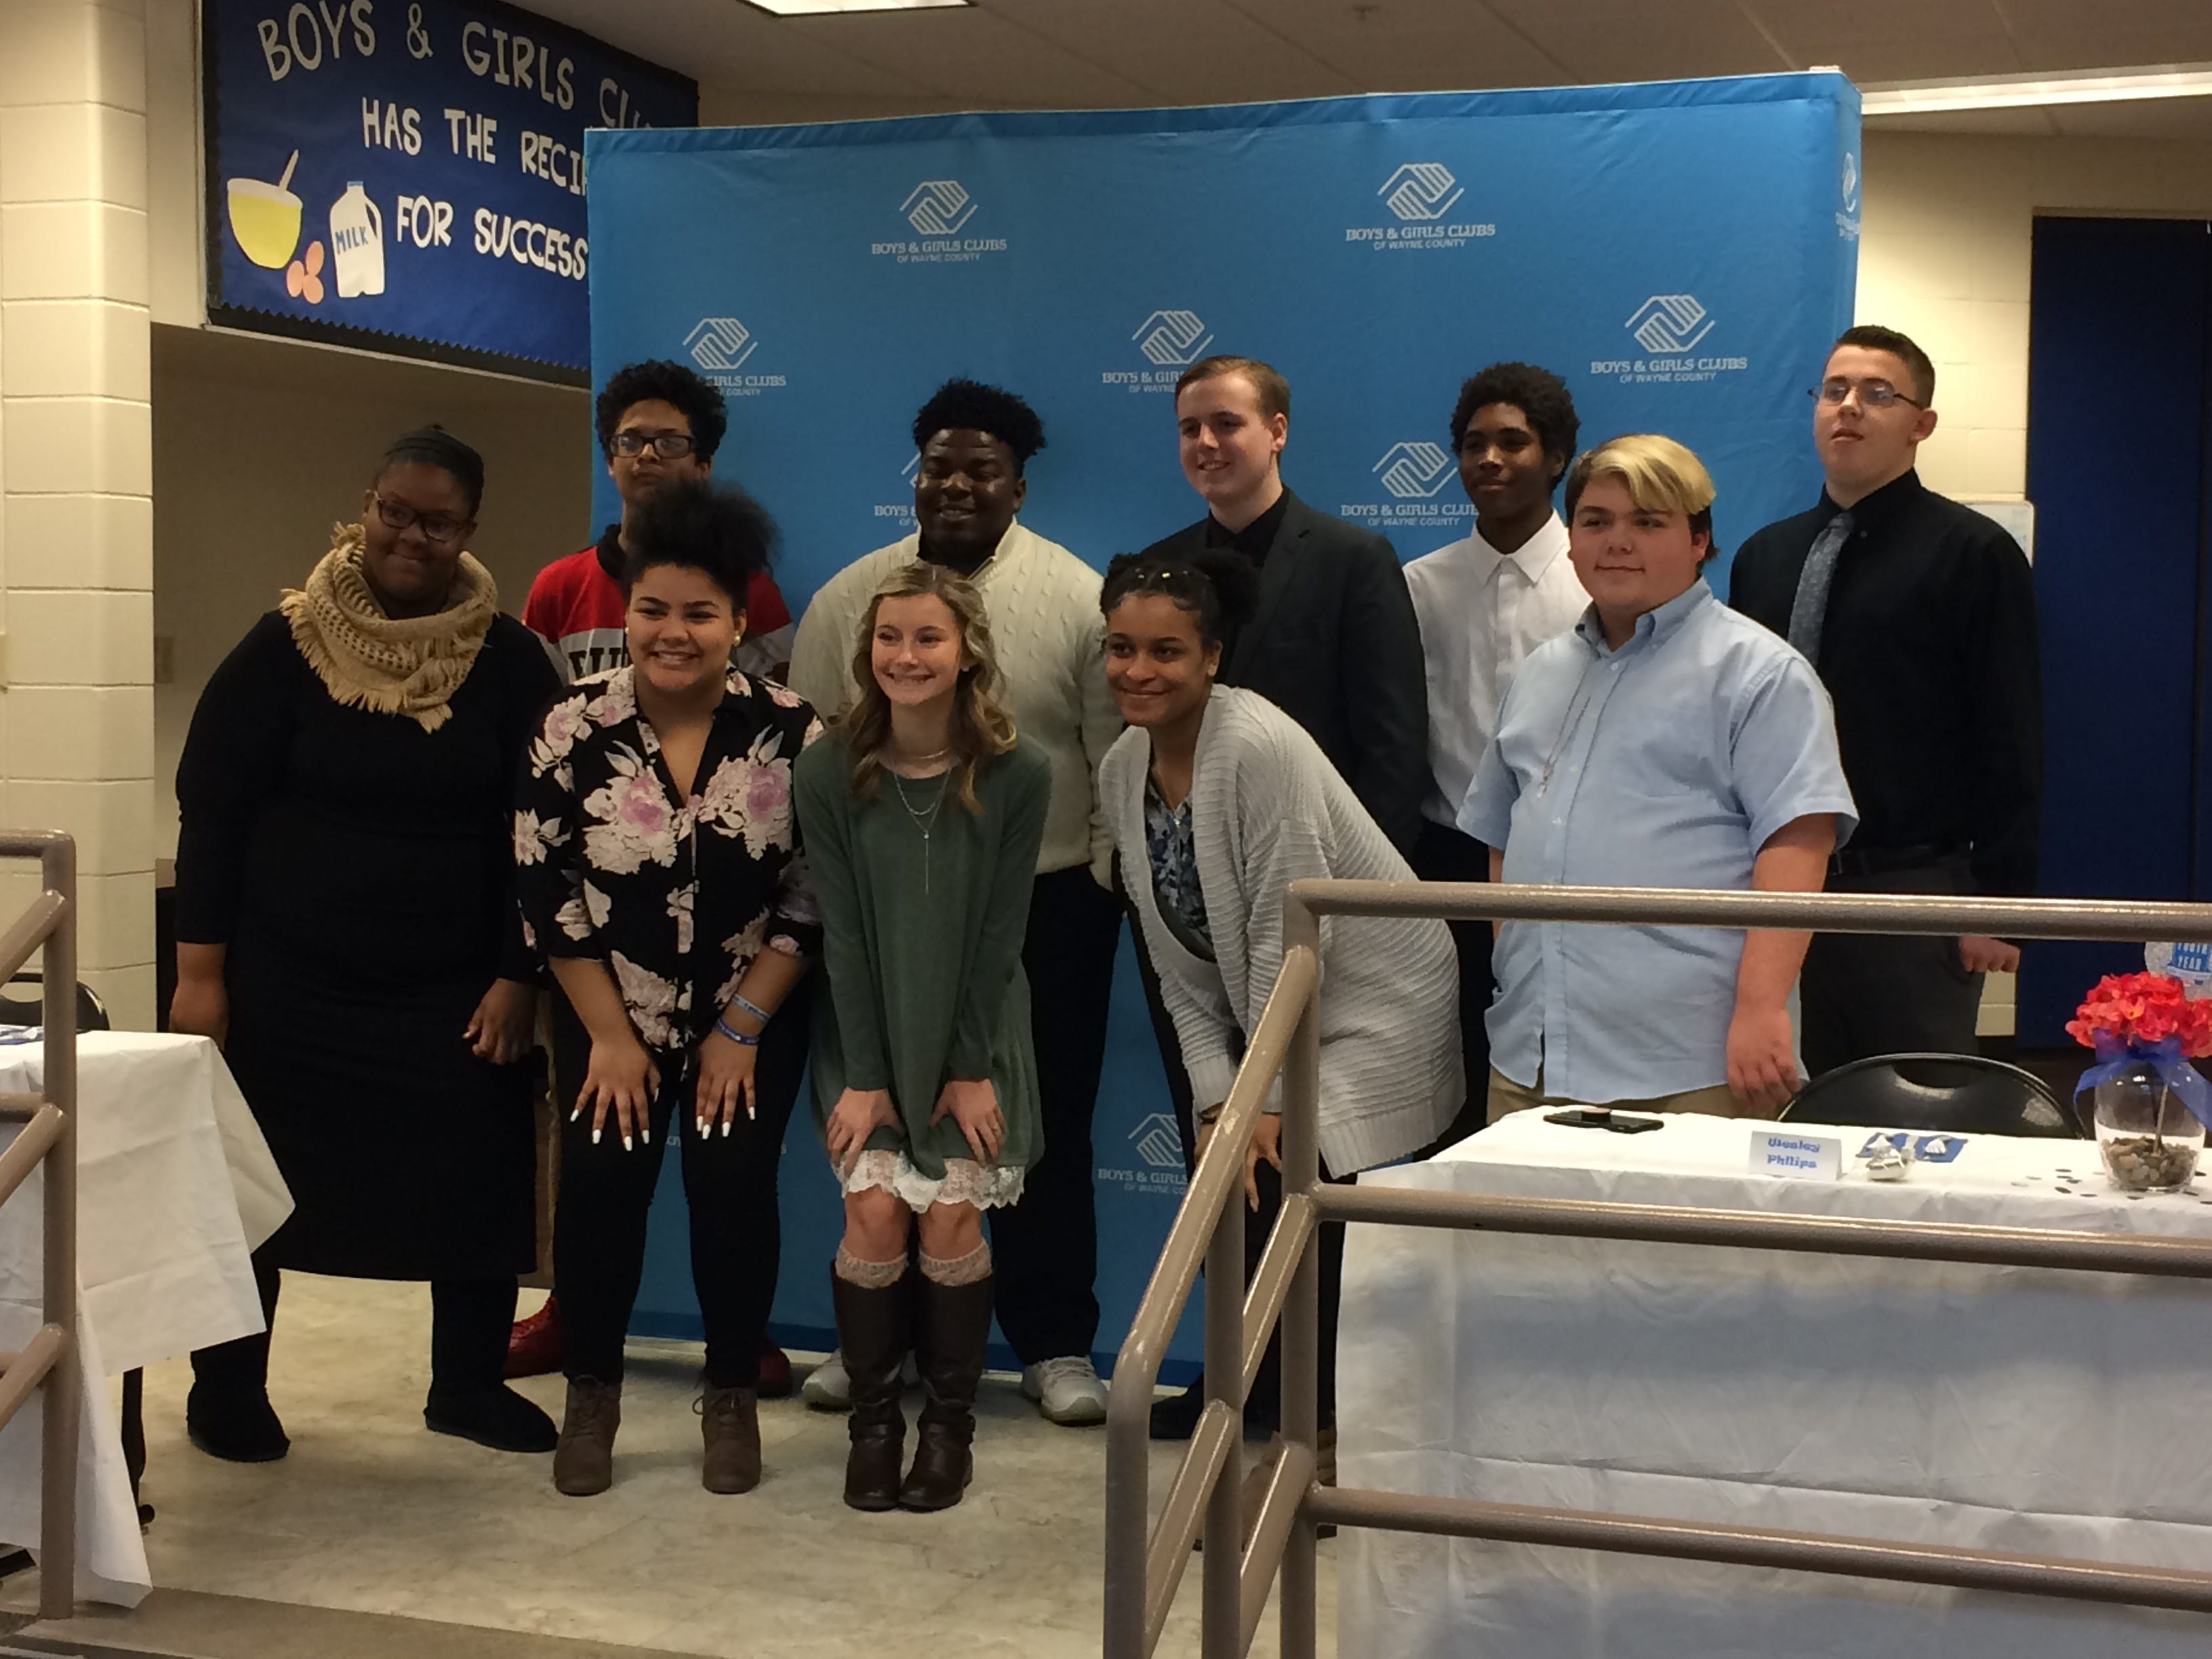 The nine 2019 candidates for Youth of the Year pose with 2018 Youth of the Year winner Kaitlyn Tracy.